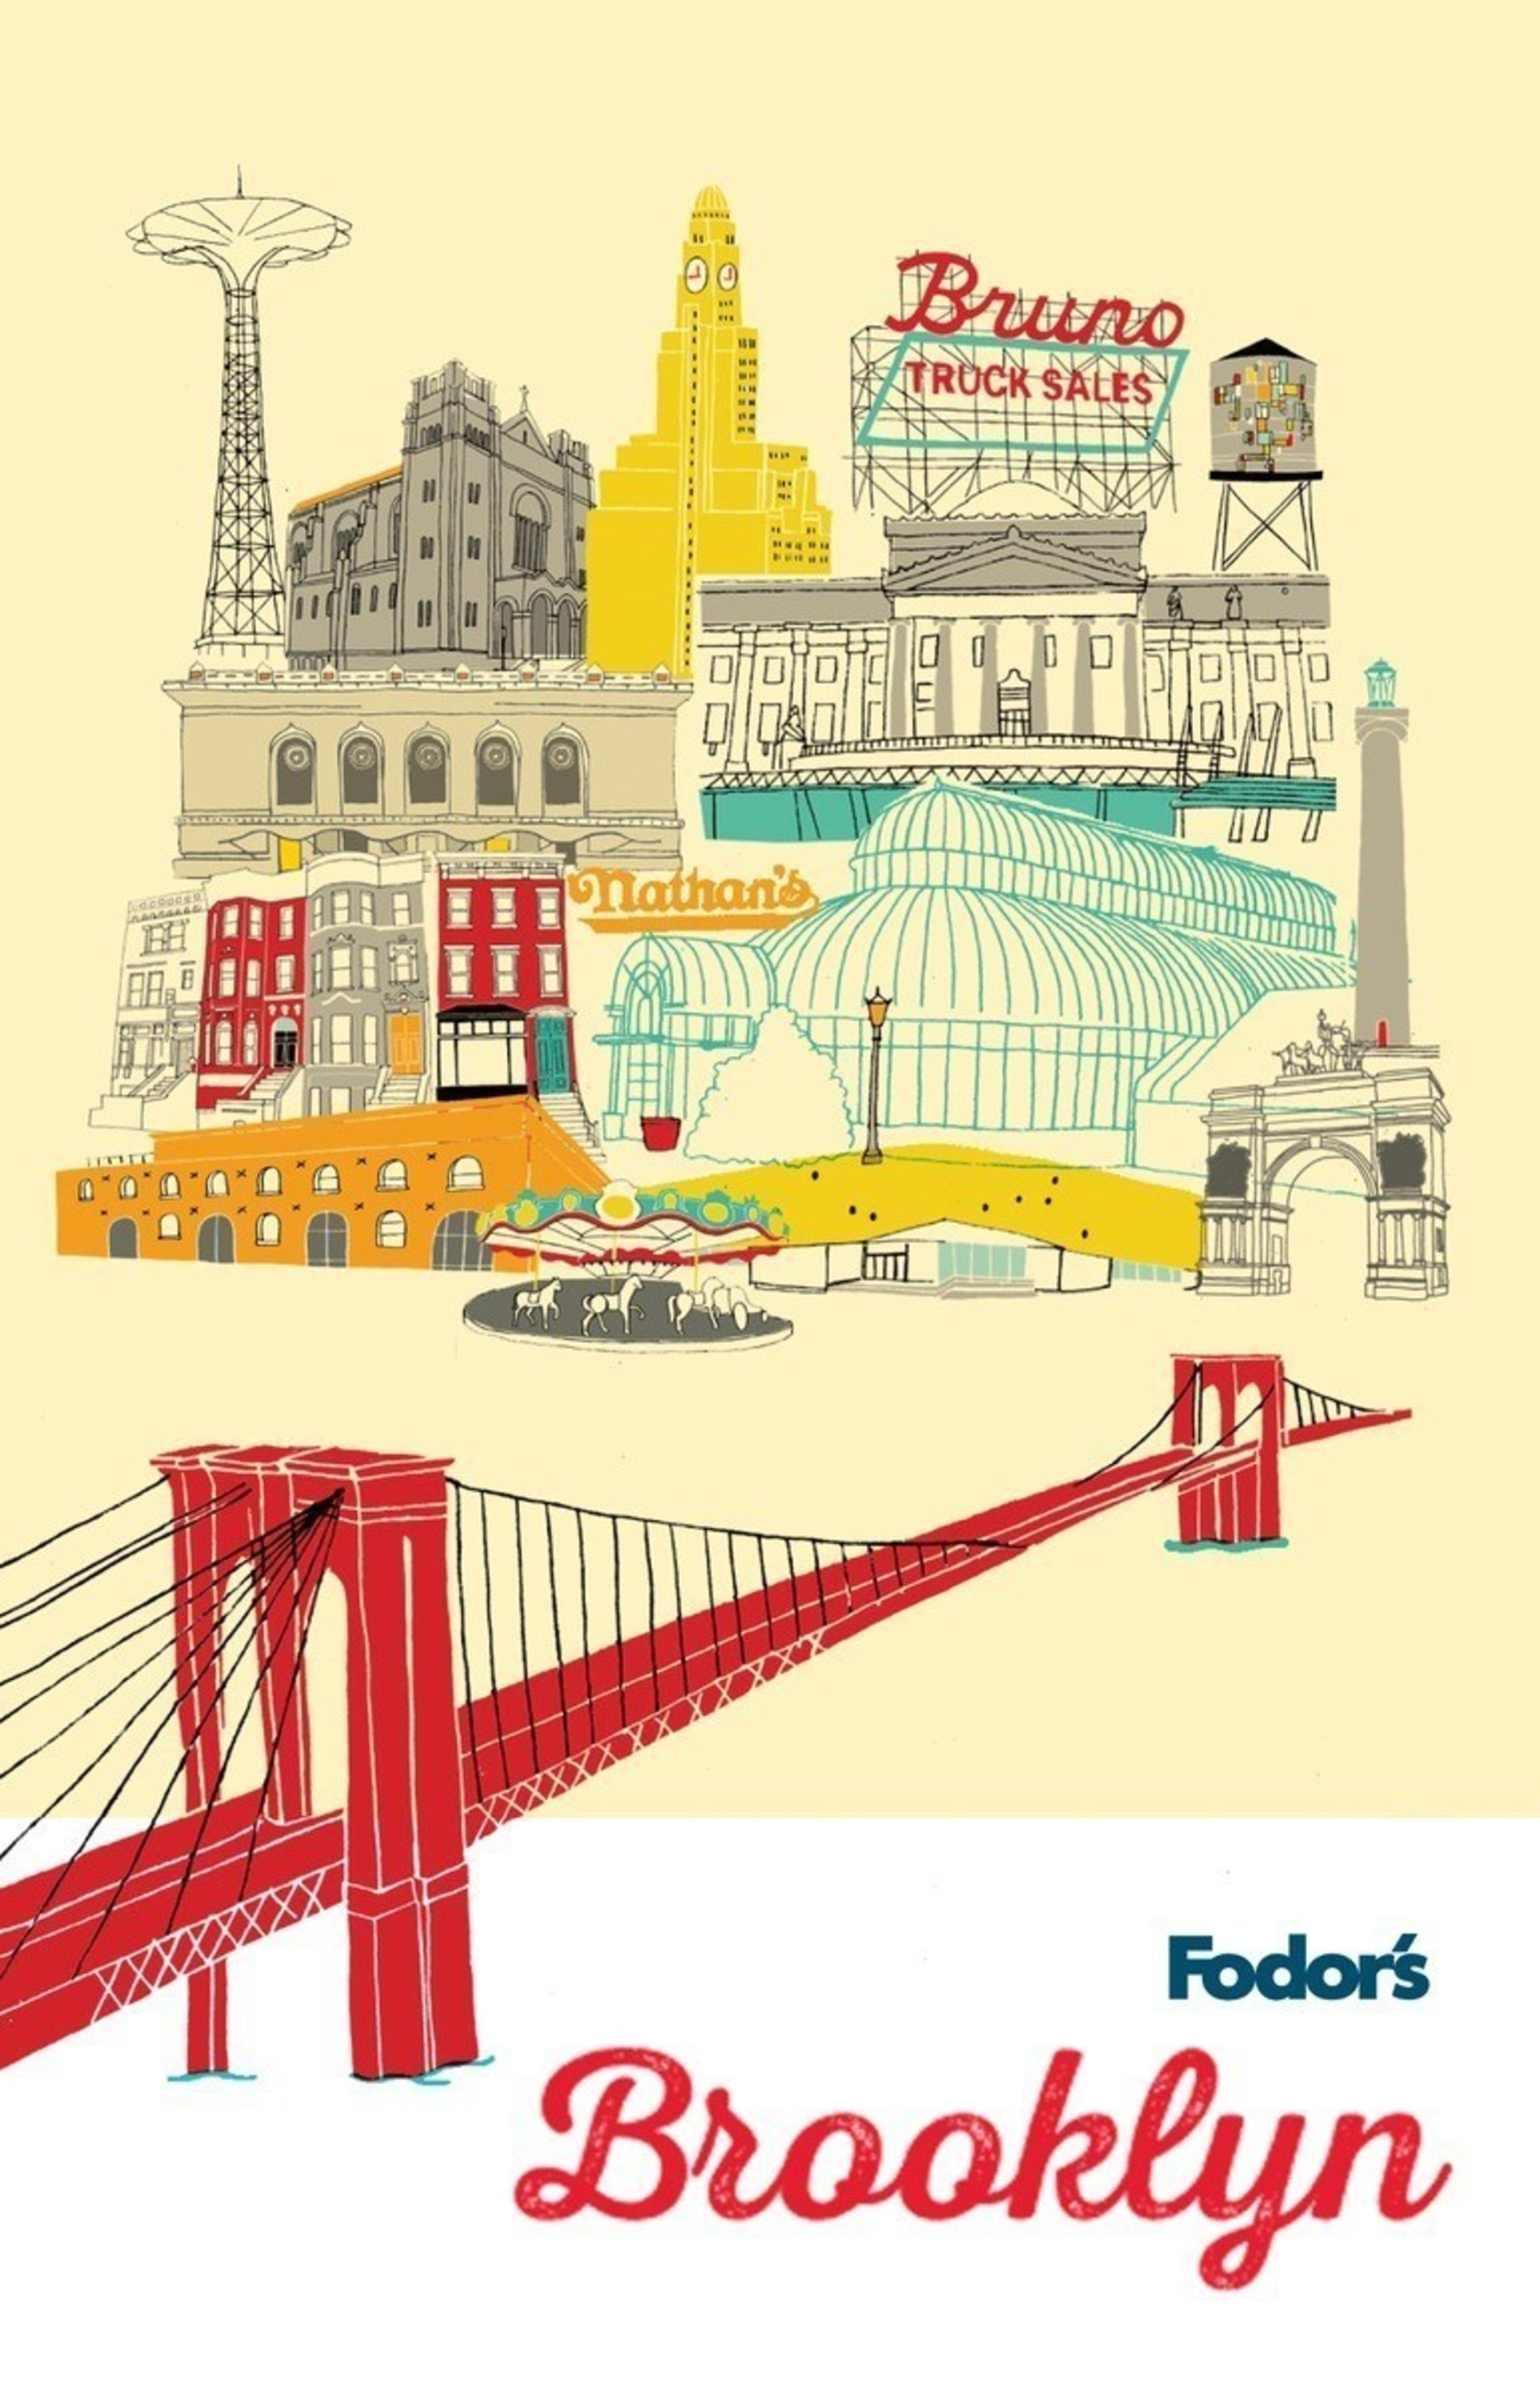 Fodor's Brooklyn, the first comprehensive guidebook to NYC's trendiest borough, goes on sale 9/15/15